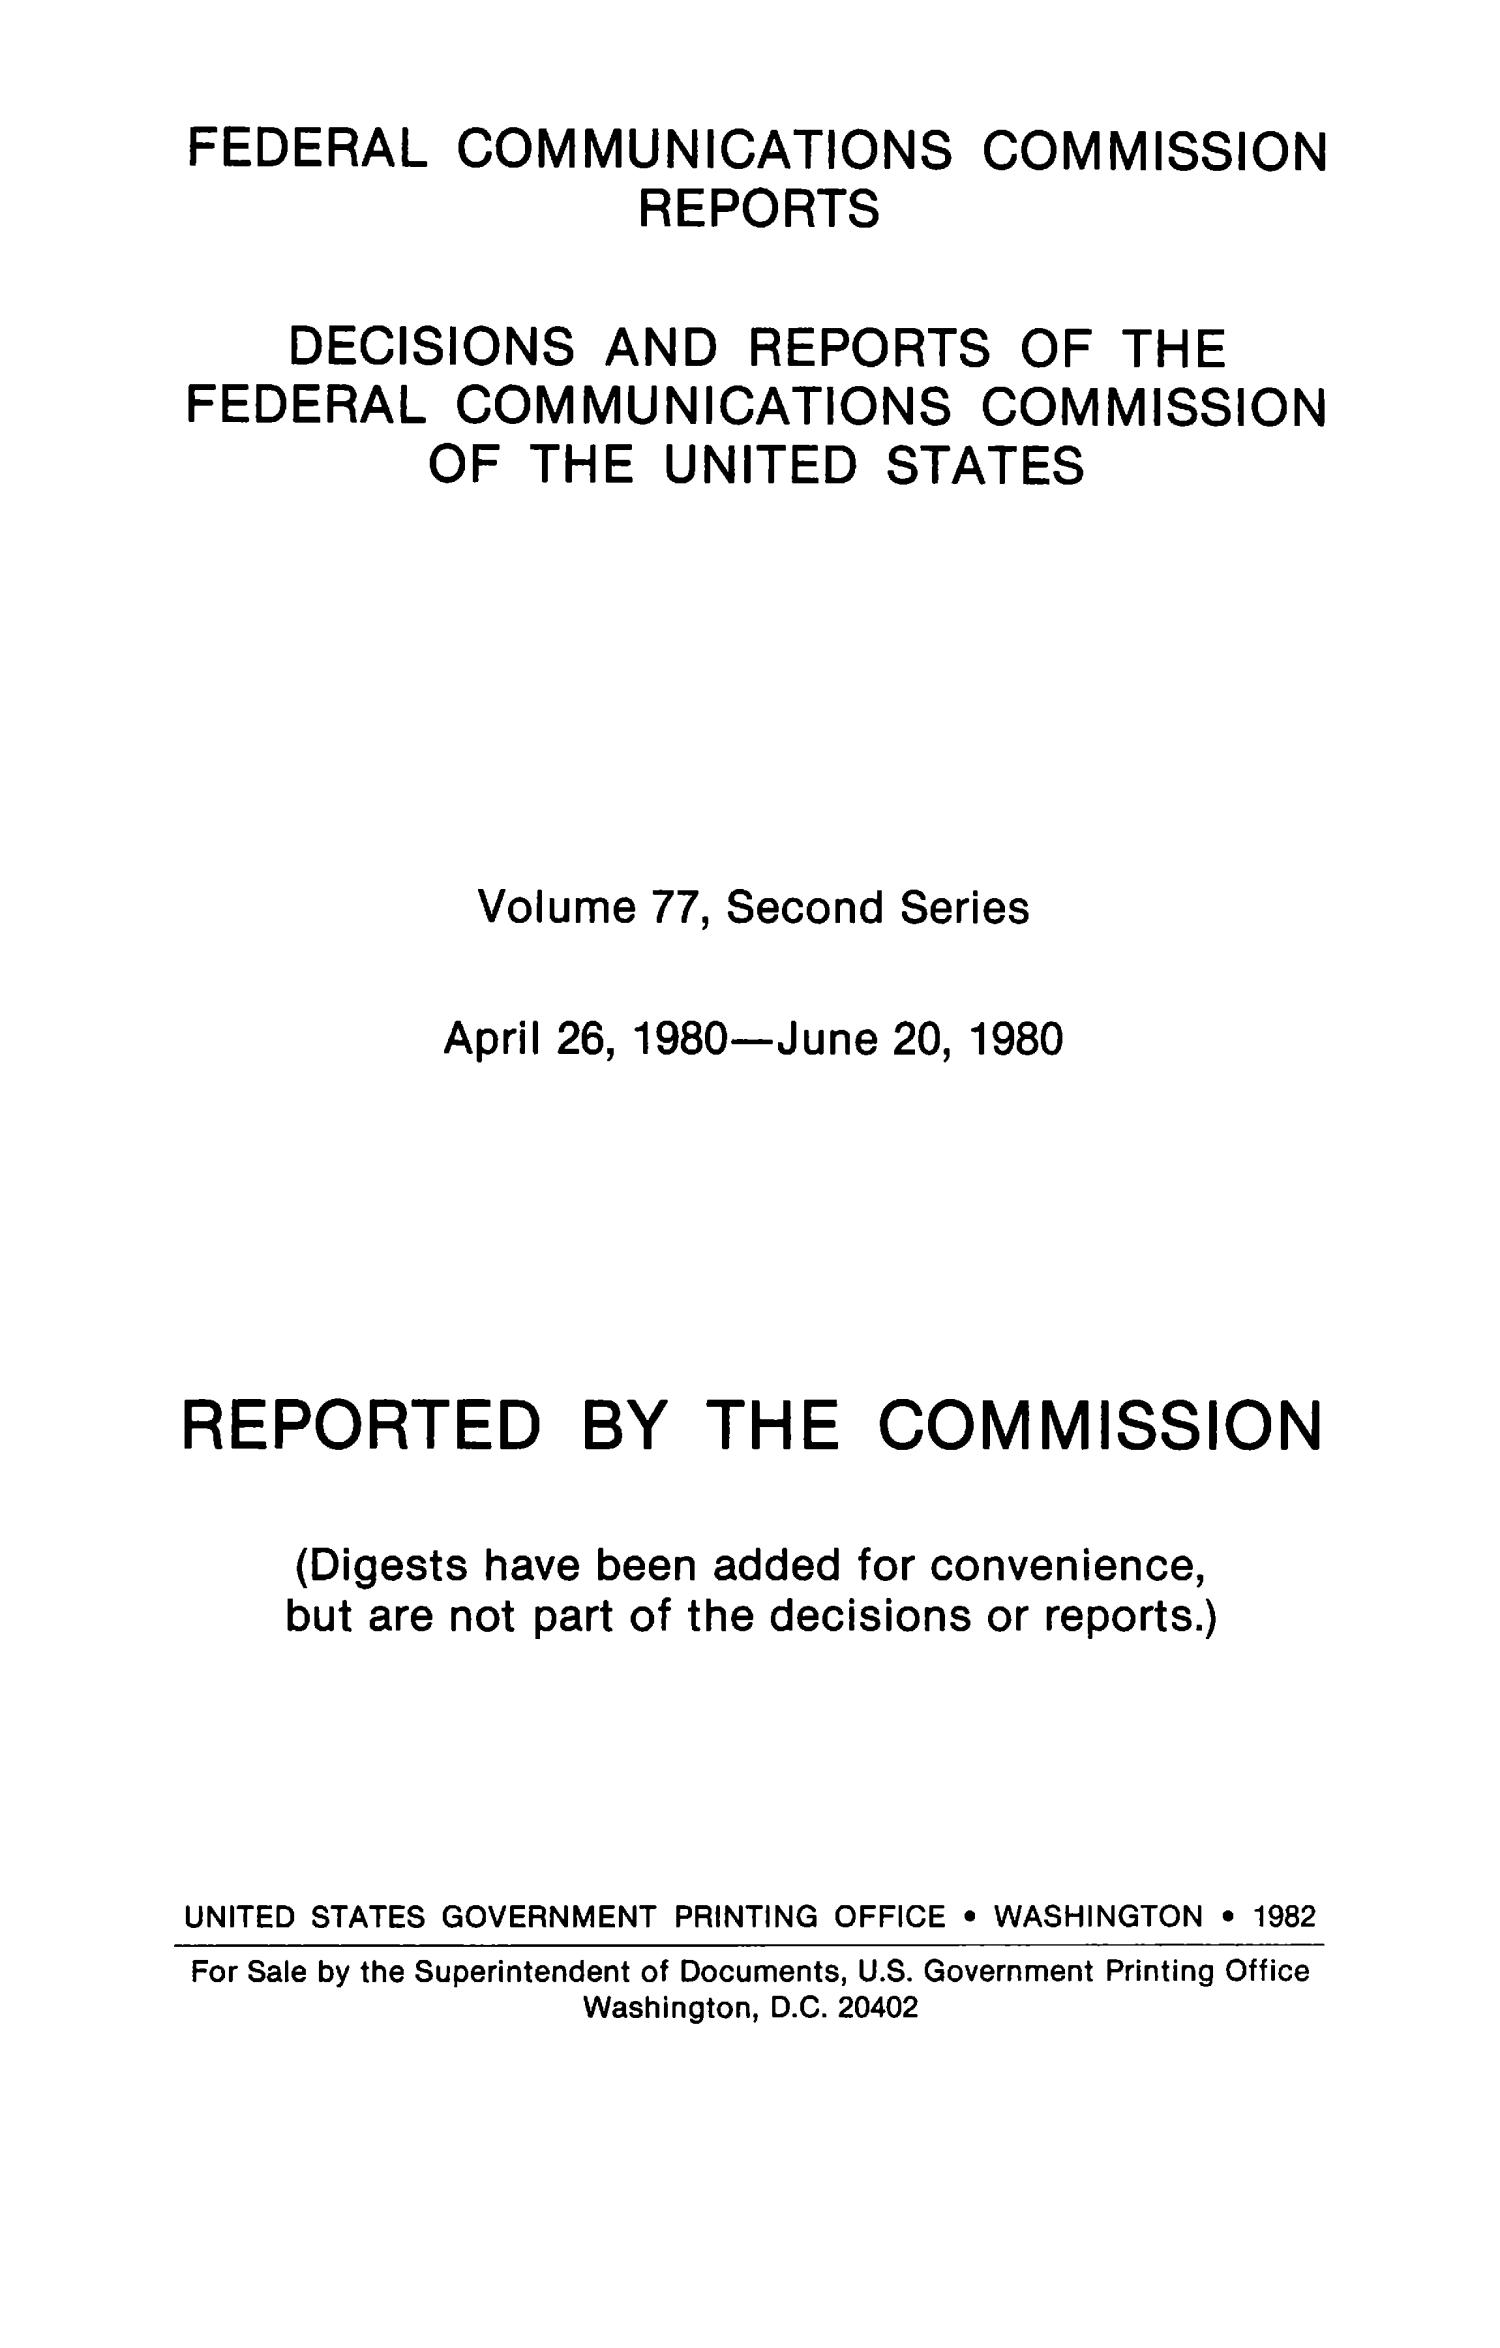 FCC Reports, Second Series, Volume 77, April 26, 1980 to June 20, 1980                                                                                                      Title Page